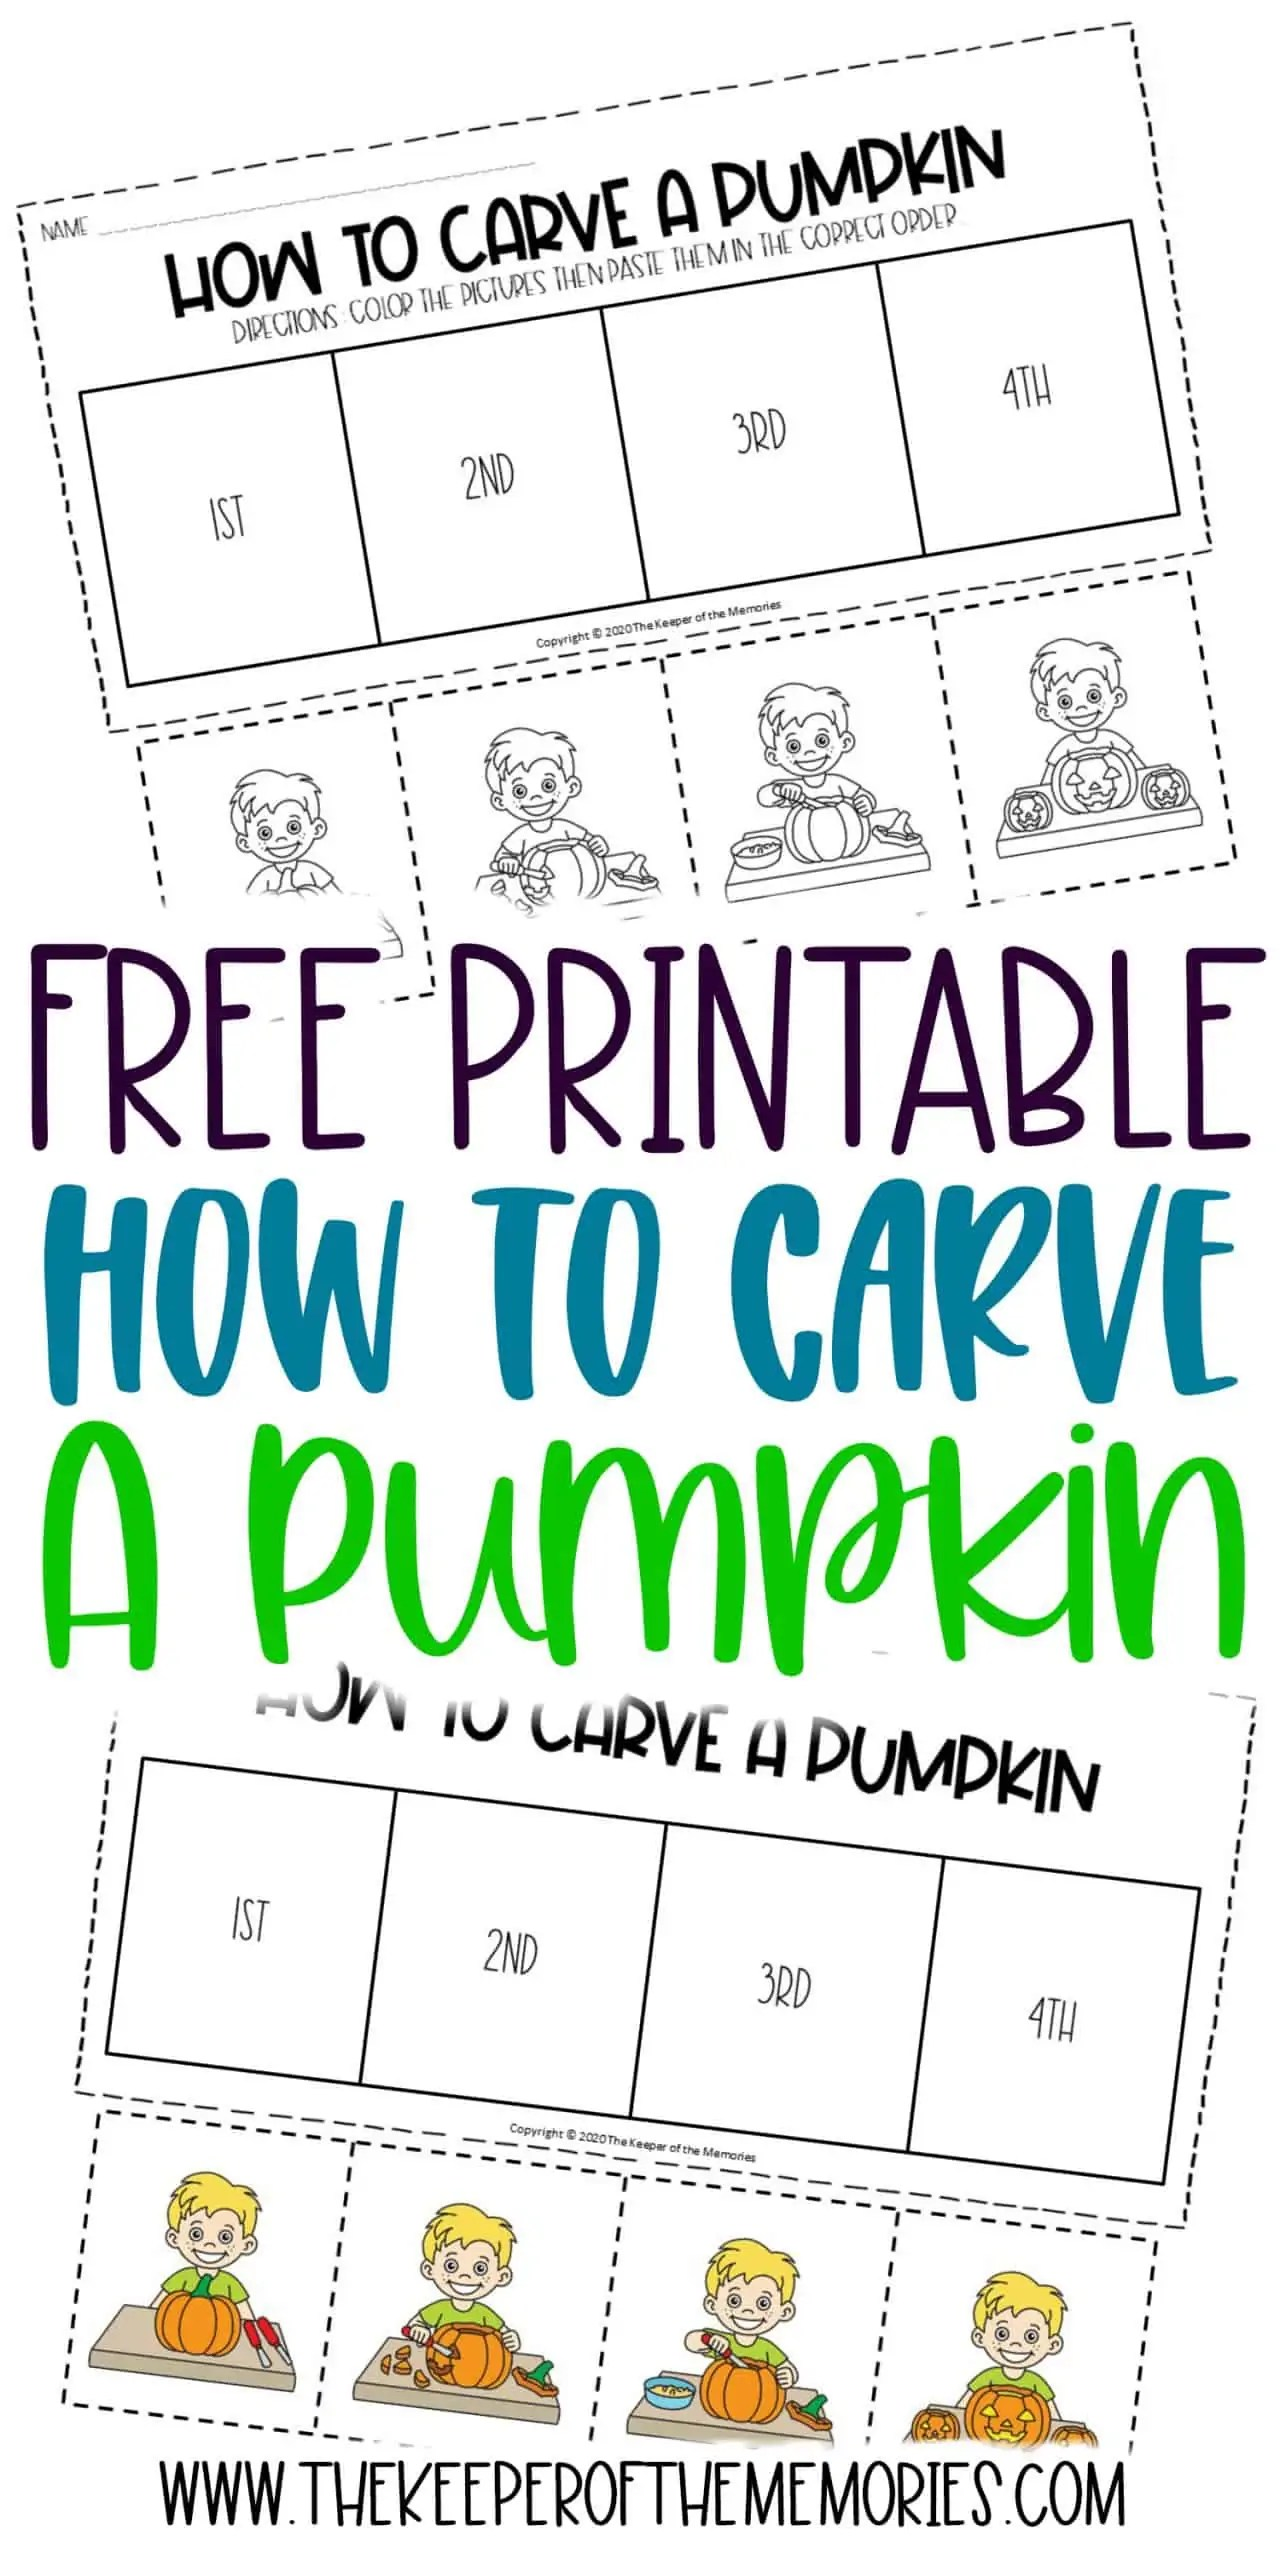 How To Carve A Pumpkin Sequencing Halloween Worksheets For